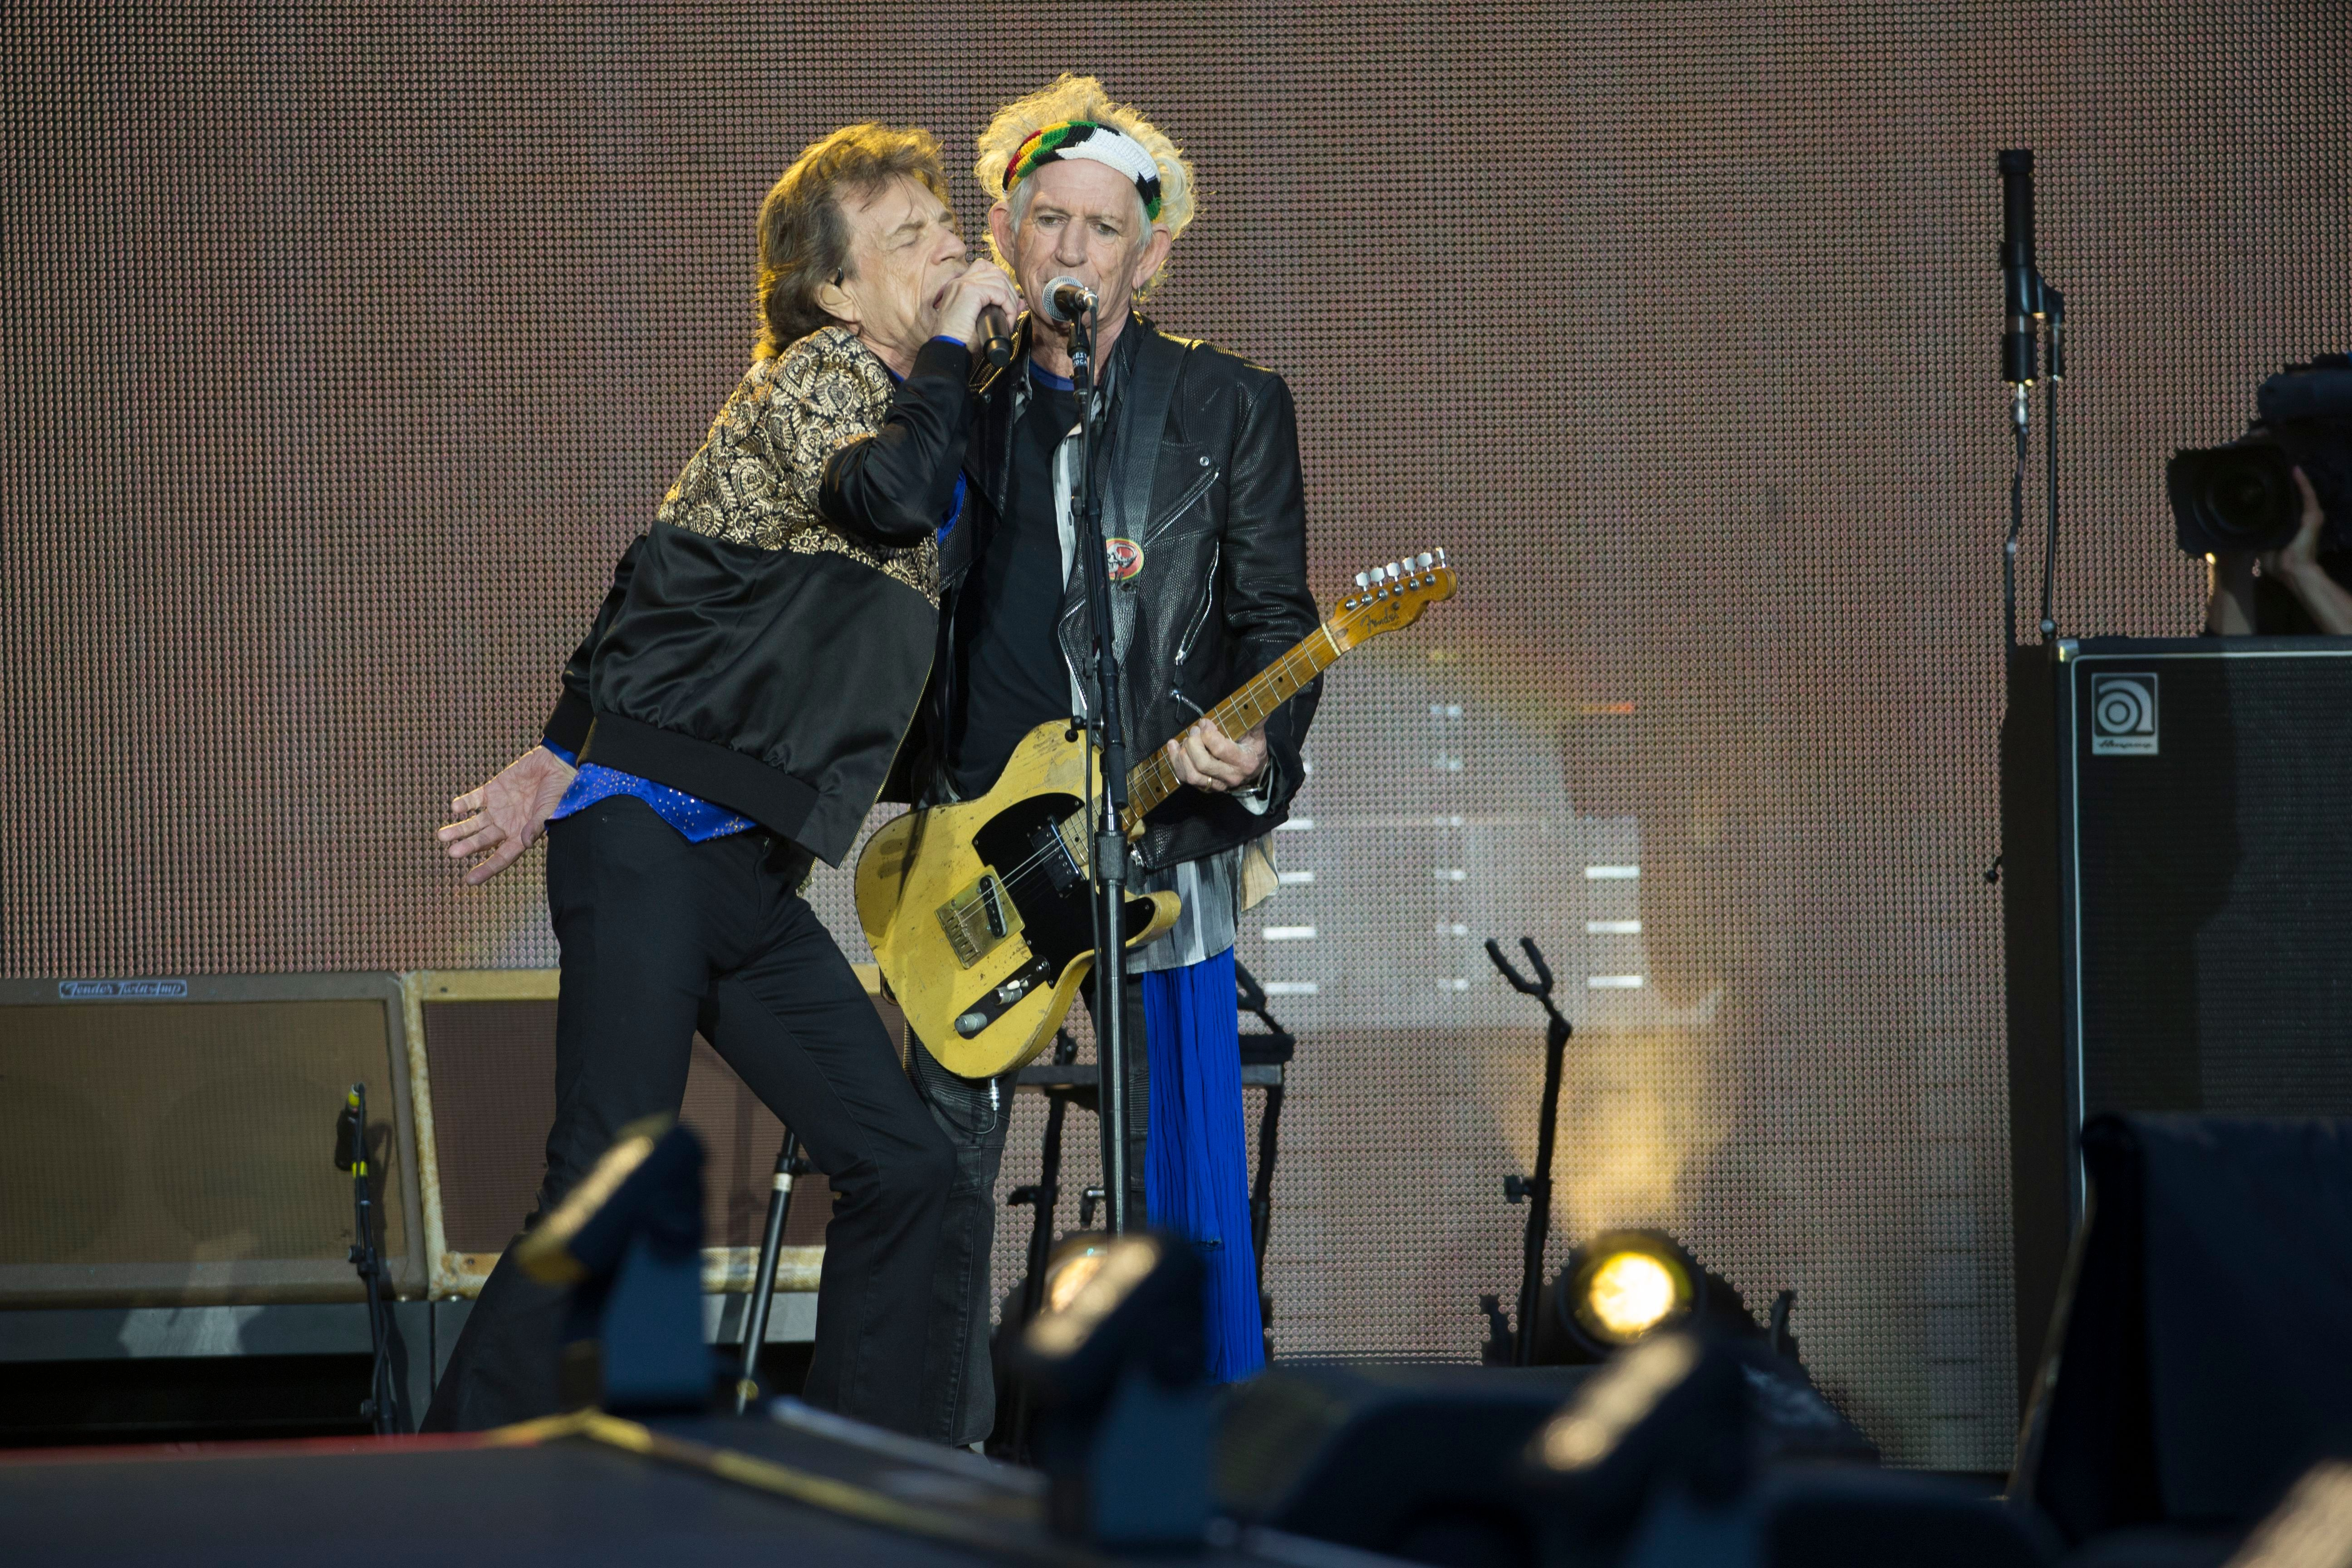 Rolling Stones 2020 Tour Rolling Stones Announce Rescheduled Dates For 2019 Tour – Rolling